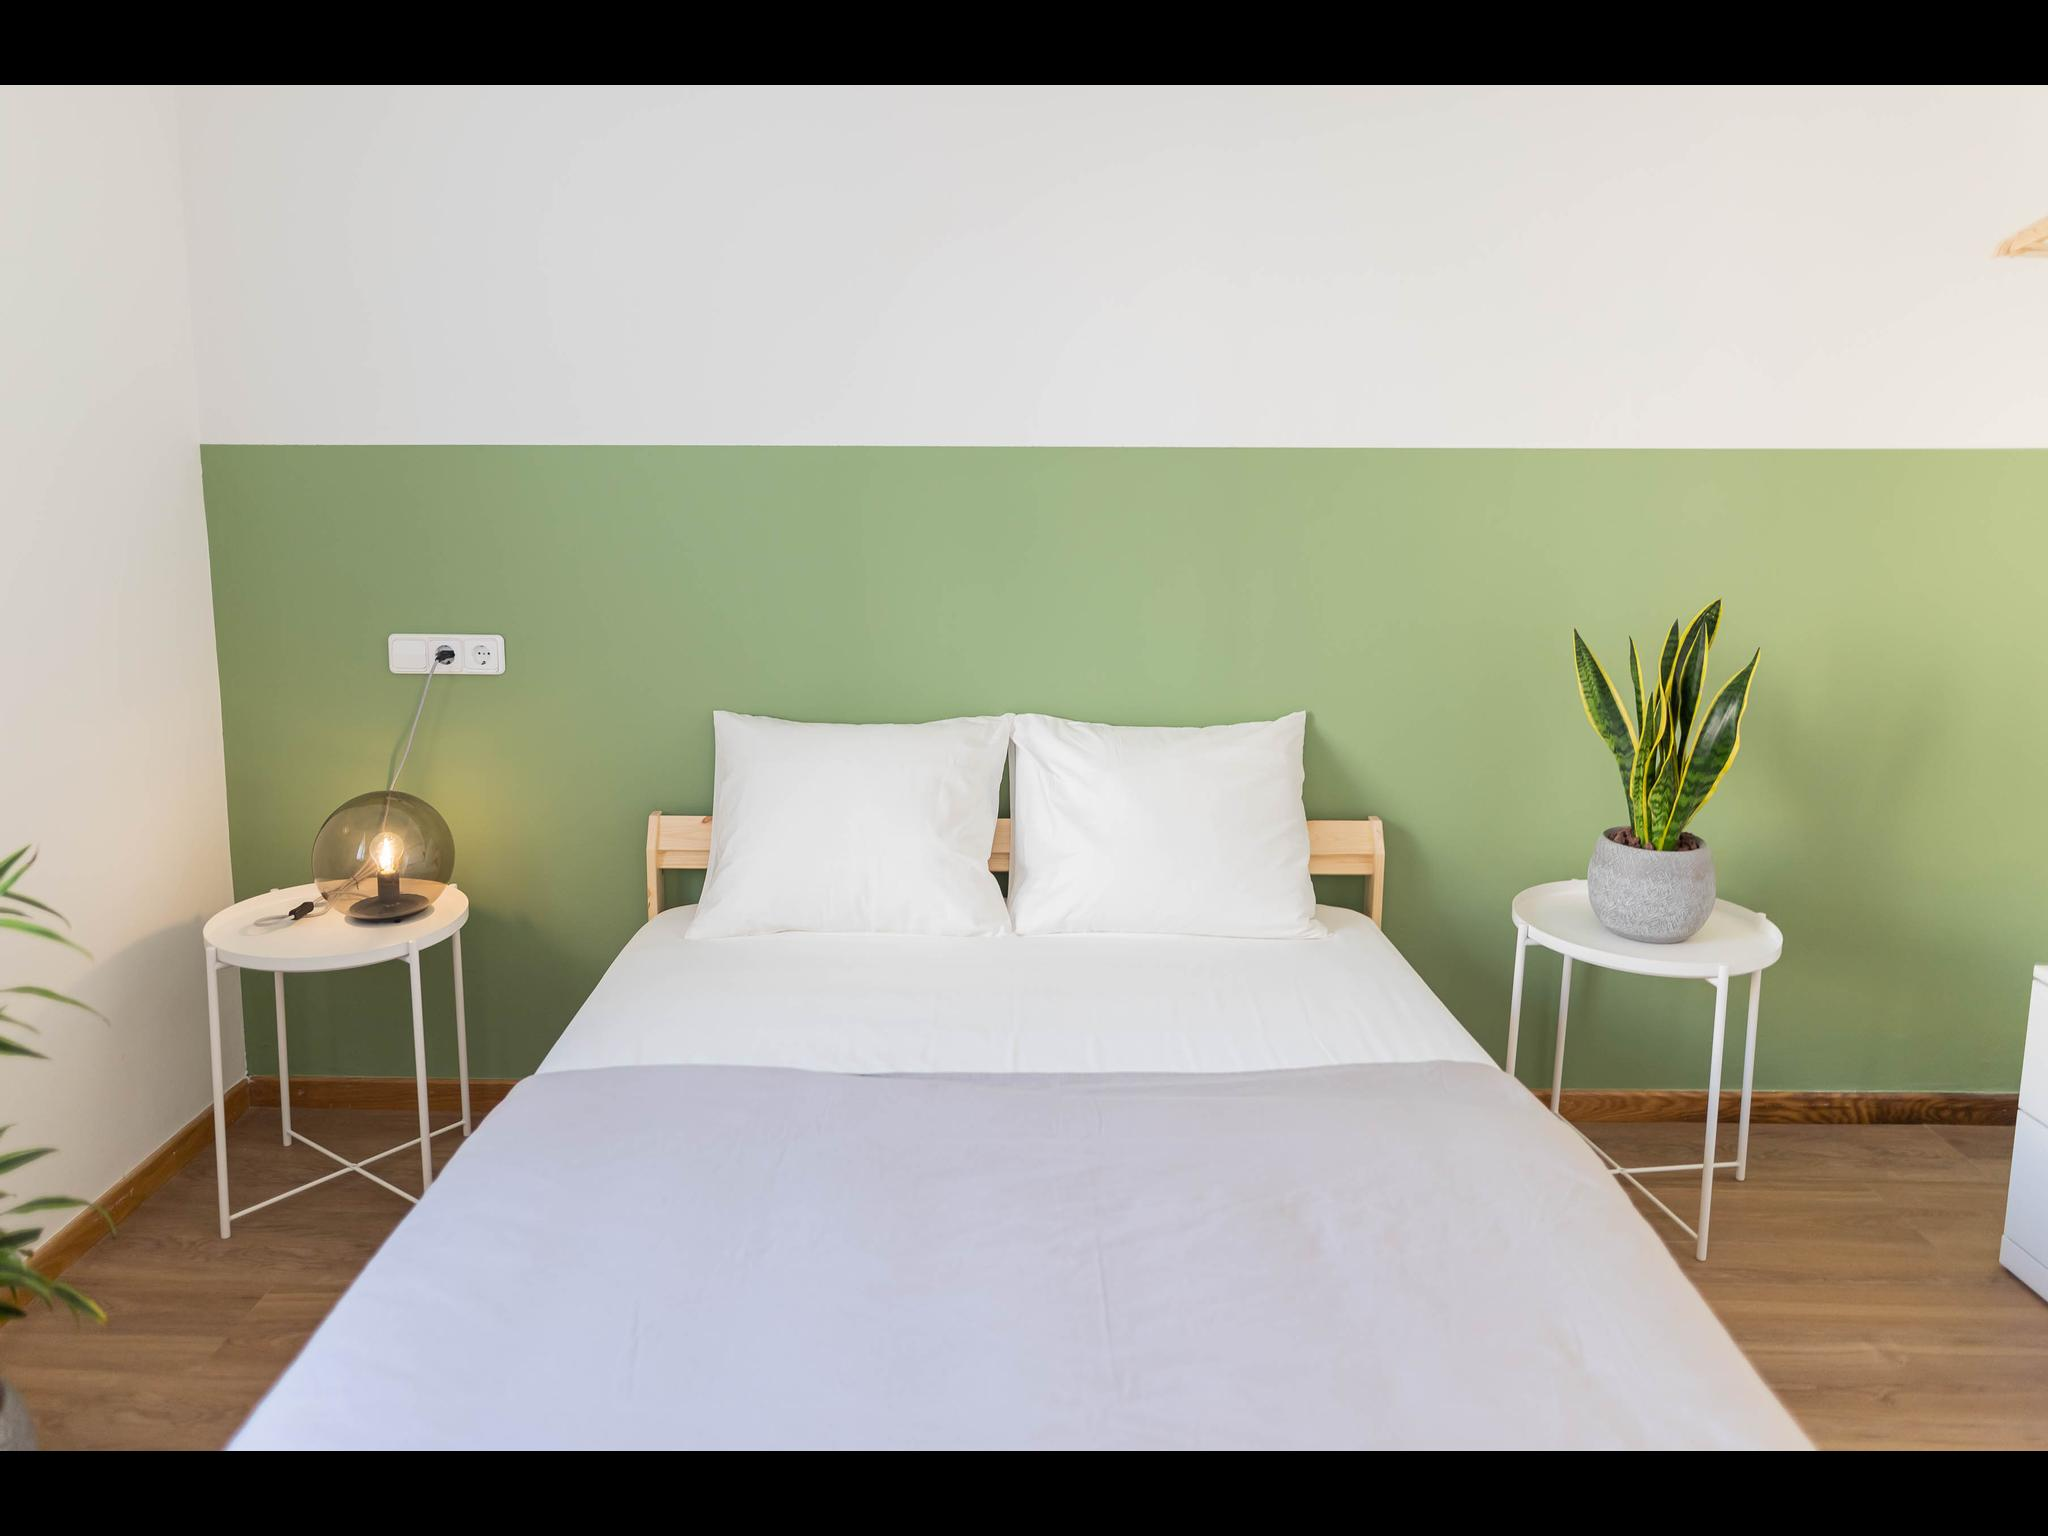 Travessera - Shared apartment in Barcelona